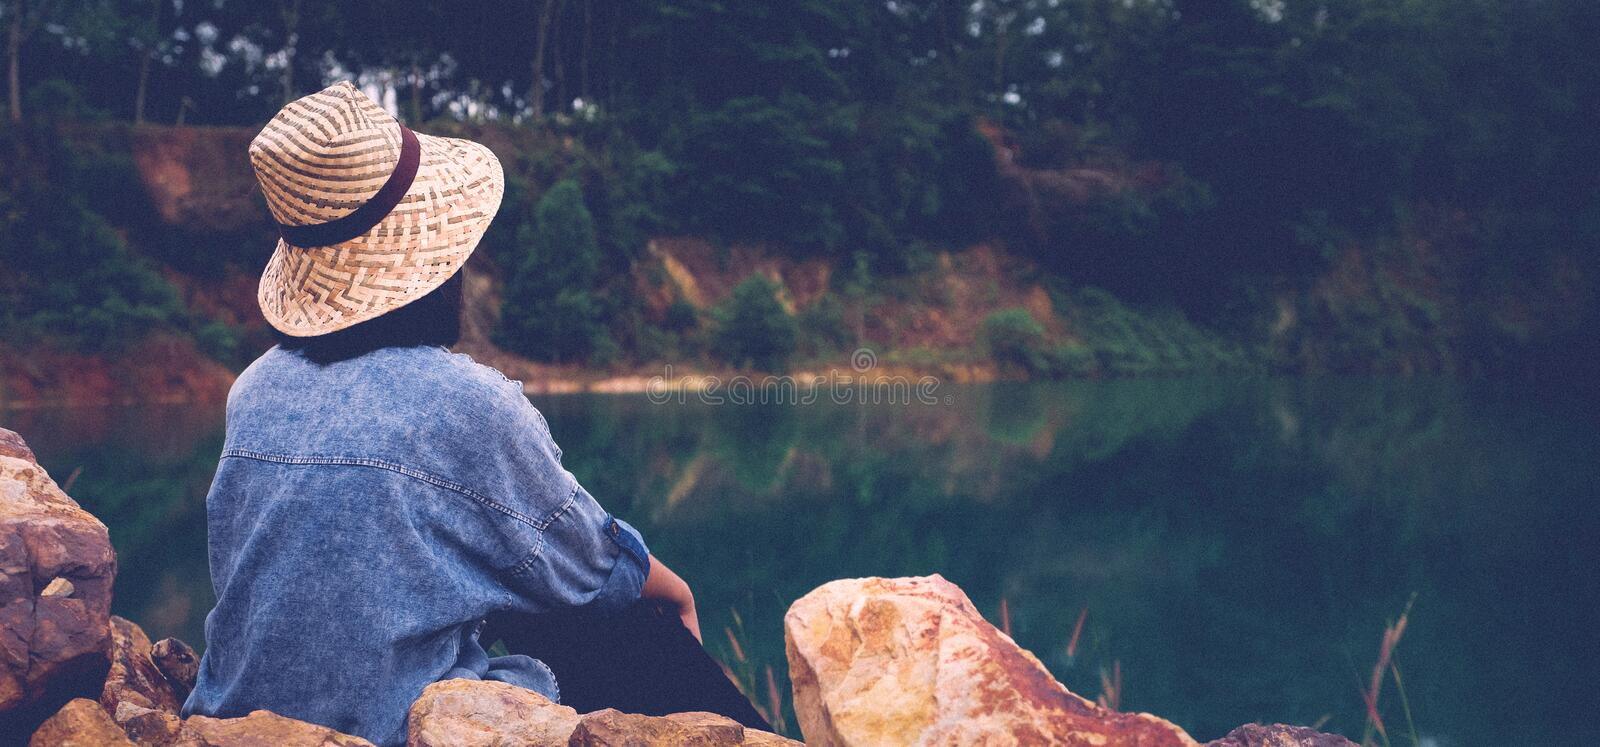 Solo travel in local asia, Back of traveler sitting on rock ground by lake lagoon, Woman tourist traveler sitting by local pond royalty free stock photo